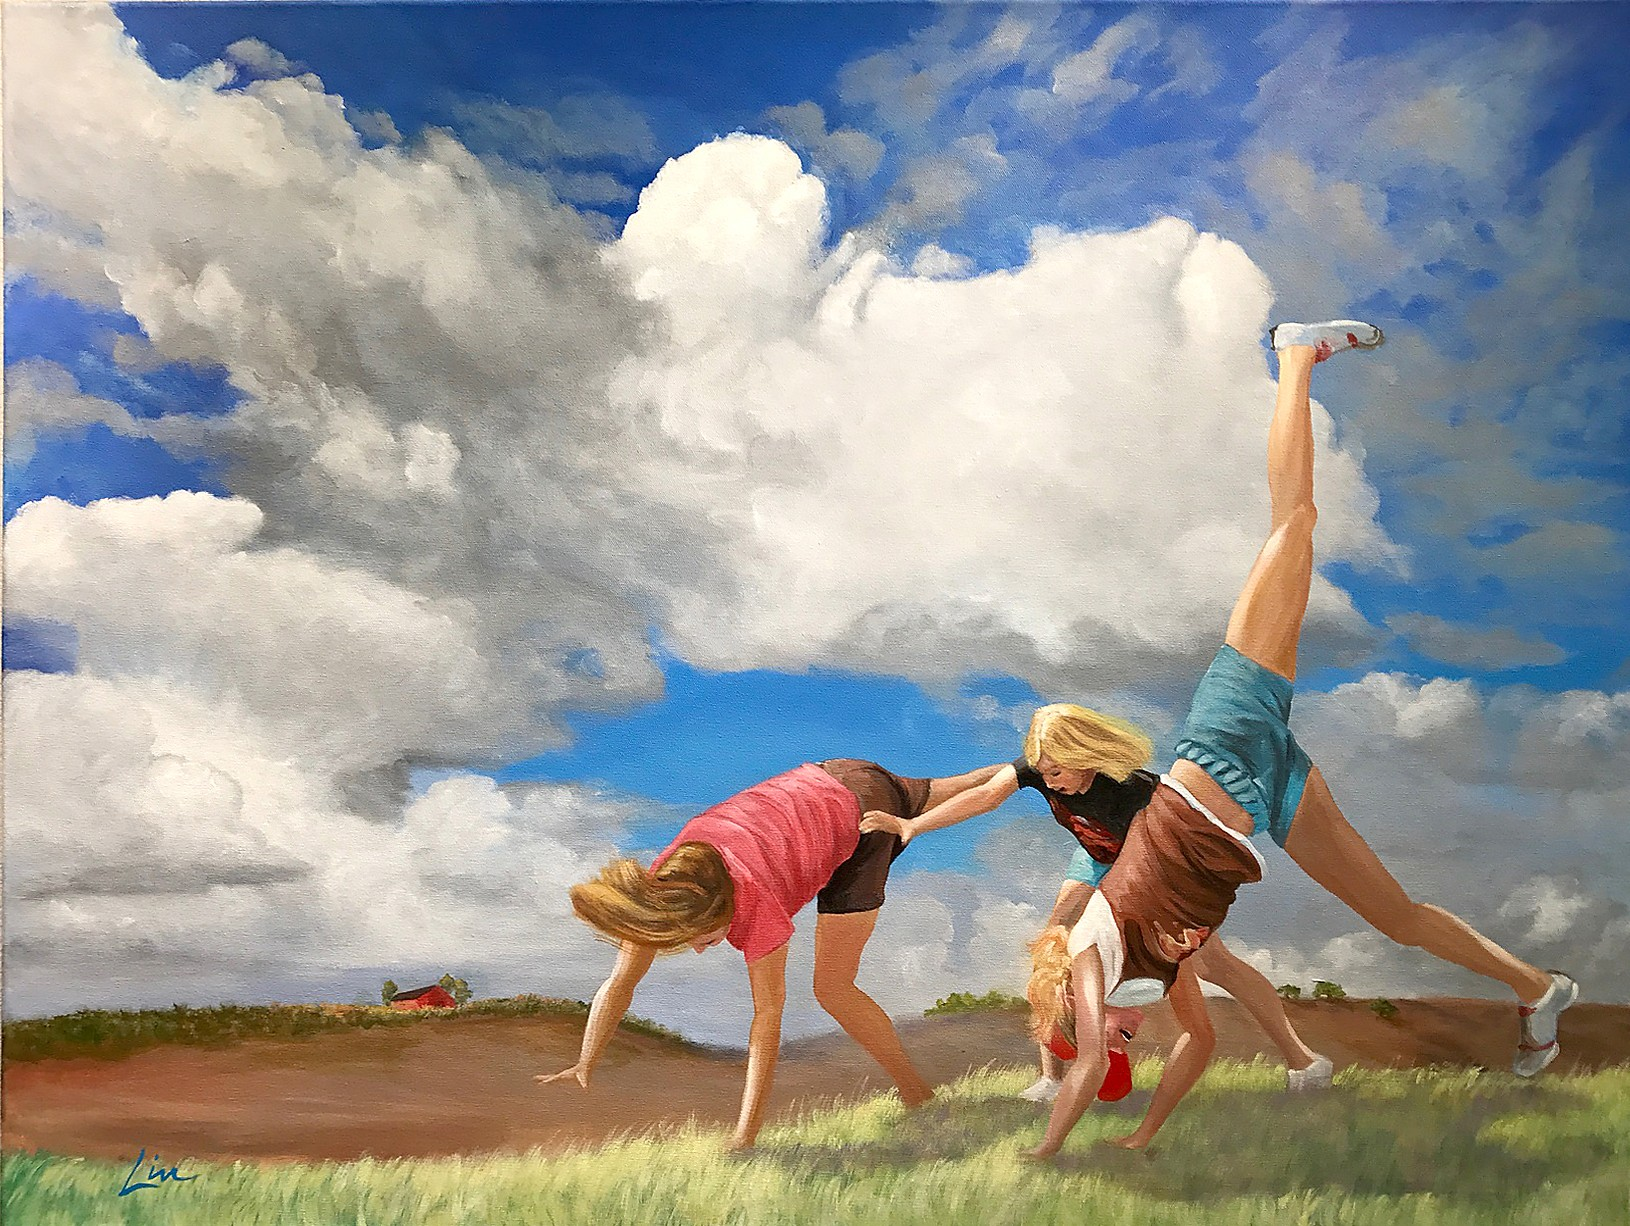 INNOCENCE Free, No Fears is artist Lin Mercer's aspirational take on how everyone should feel that carefree feeling of being a child in America. - IMAGE COURTESY OF THE PASO ROBLES ART ASSOCIATION